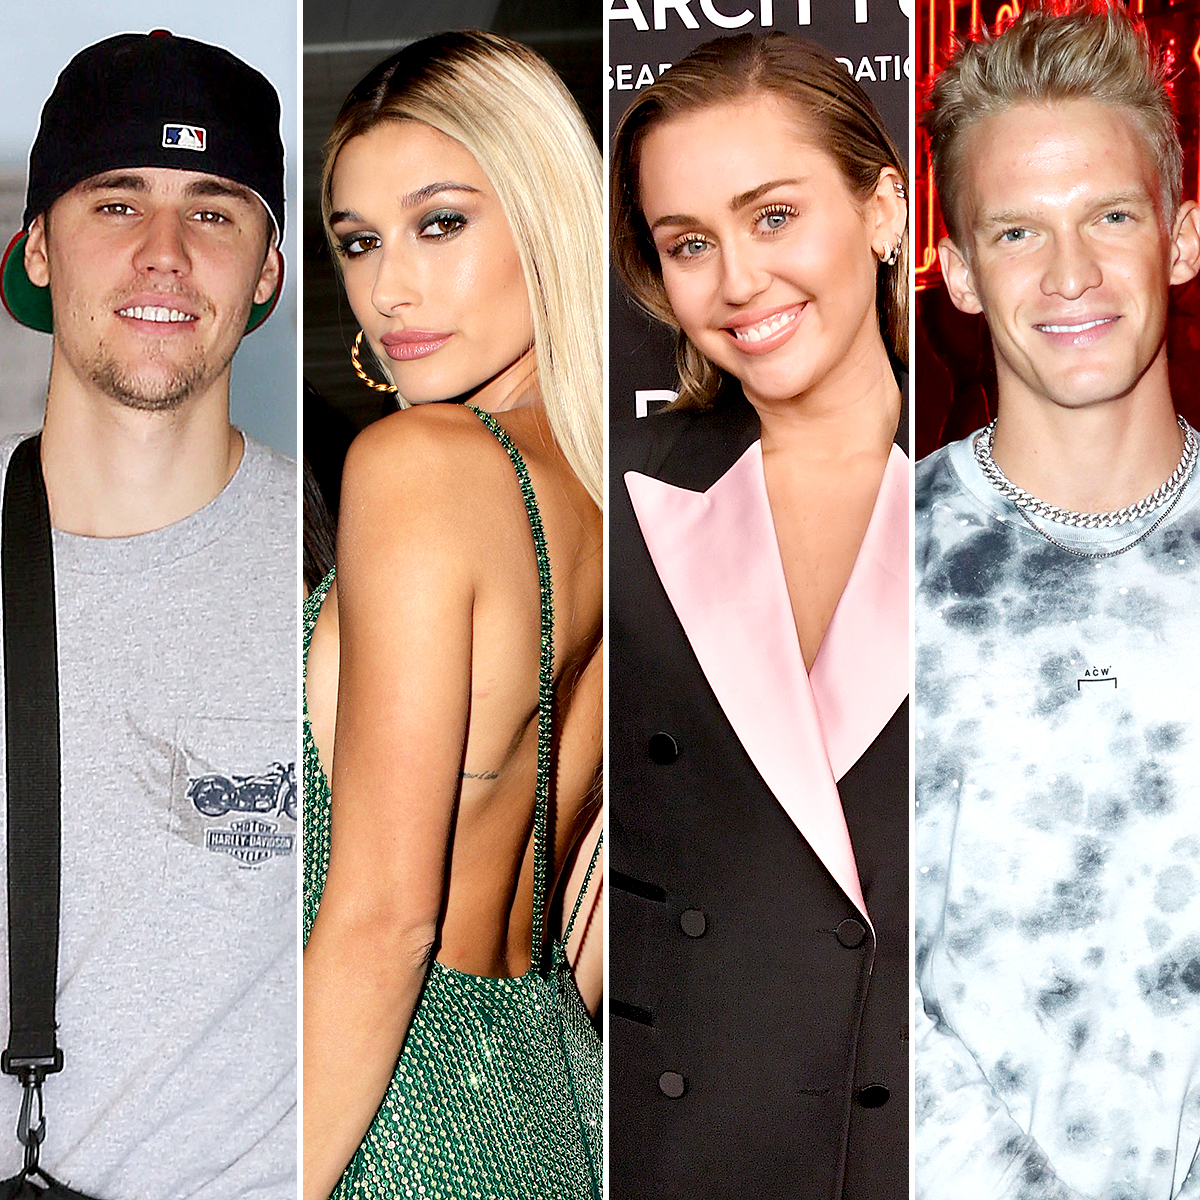 Justin-Bieber-Suggests-Double-Date-With-Hailey-Baldwin,-Miley-Cyrus-and-Cody-Simpson-1